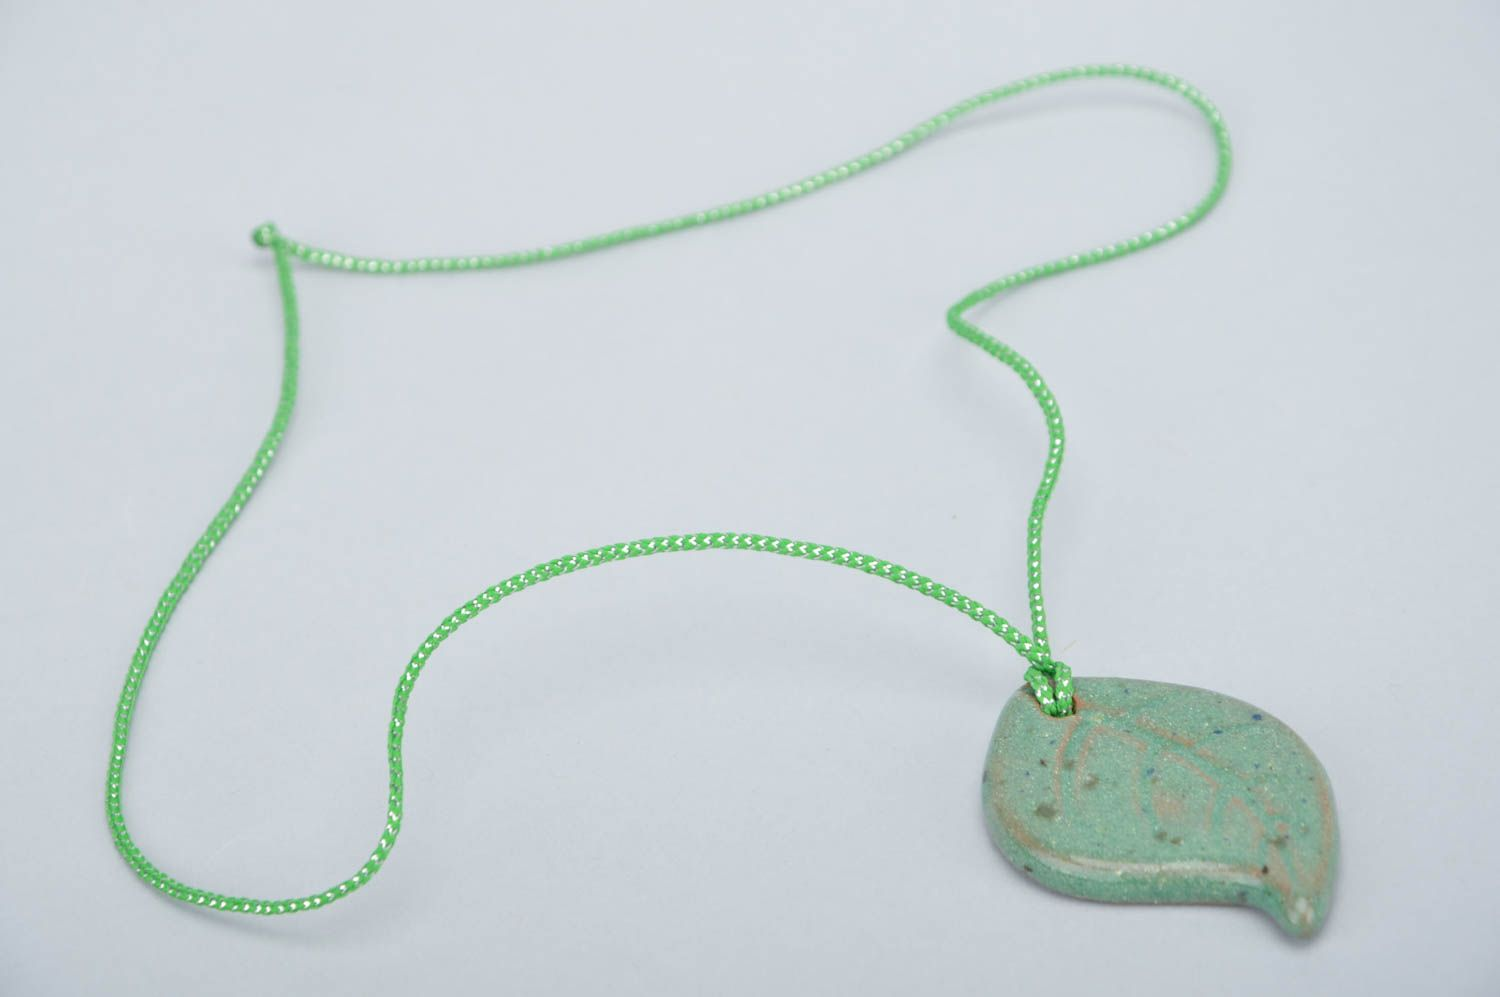 Handmade ceramic small pendant in the shape of light green leaf on a cord photo 2